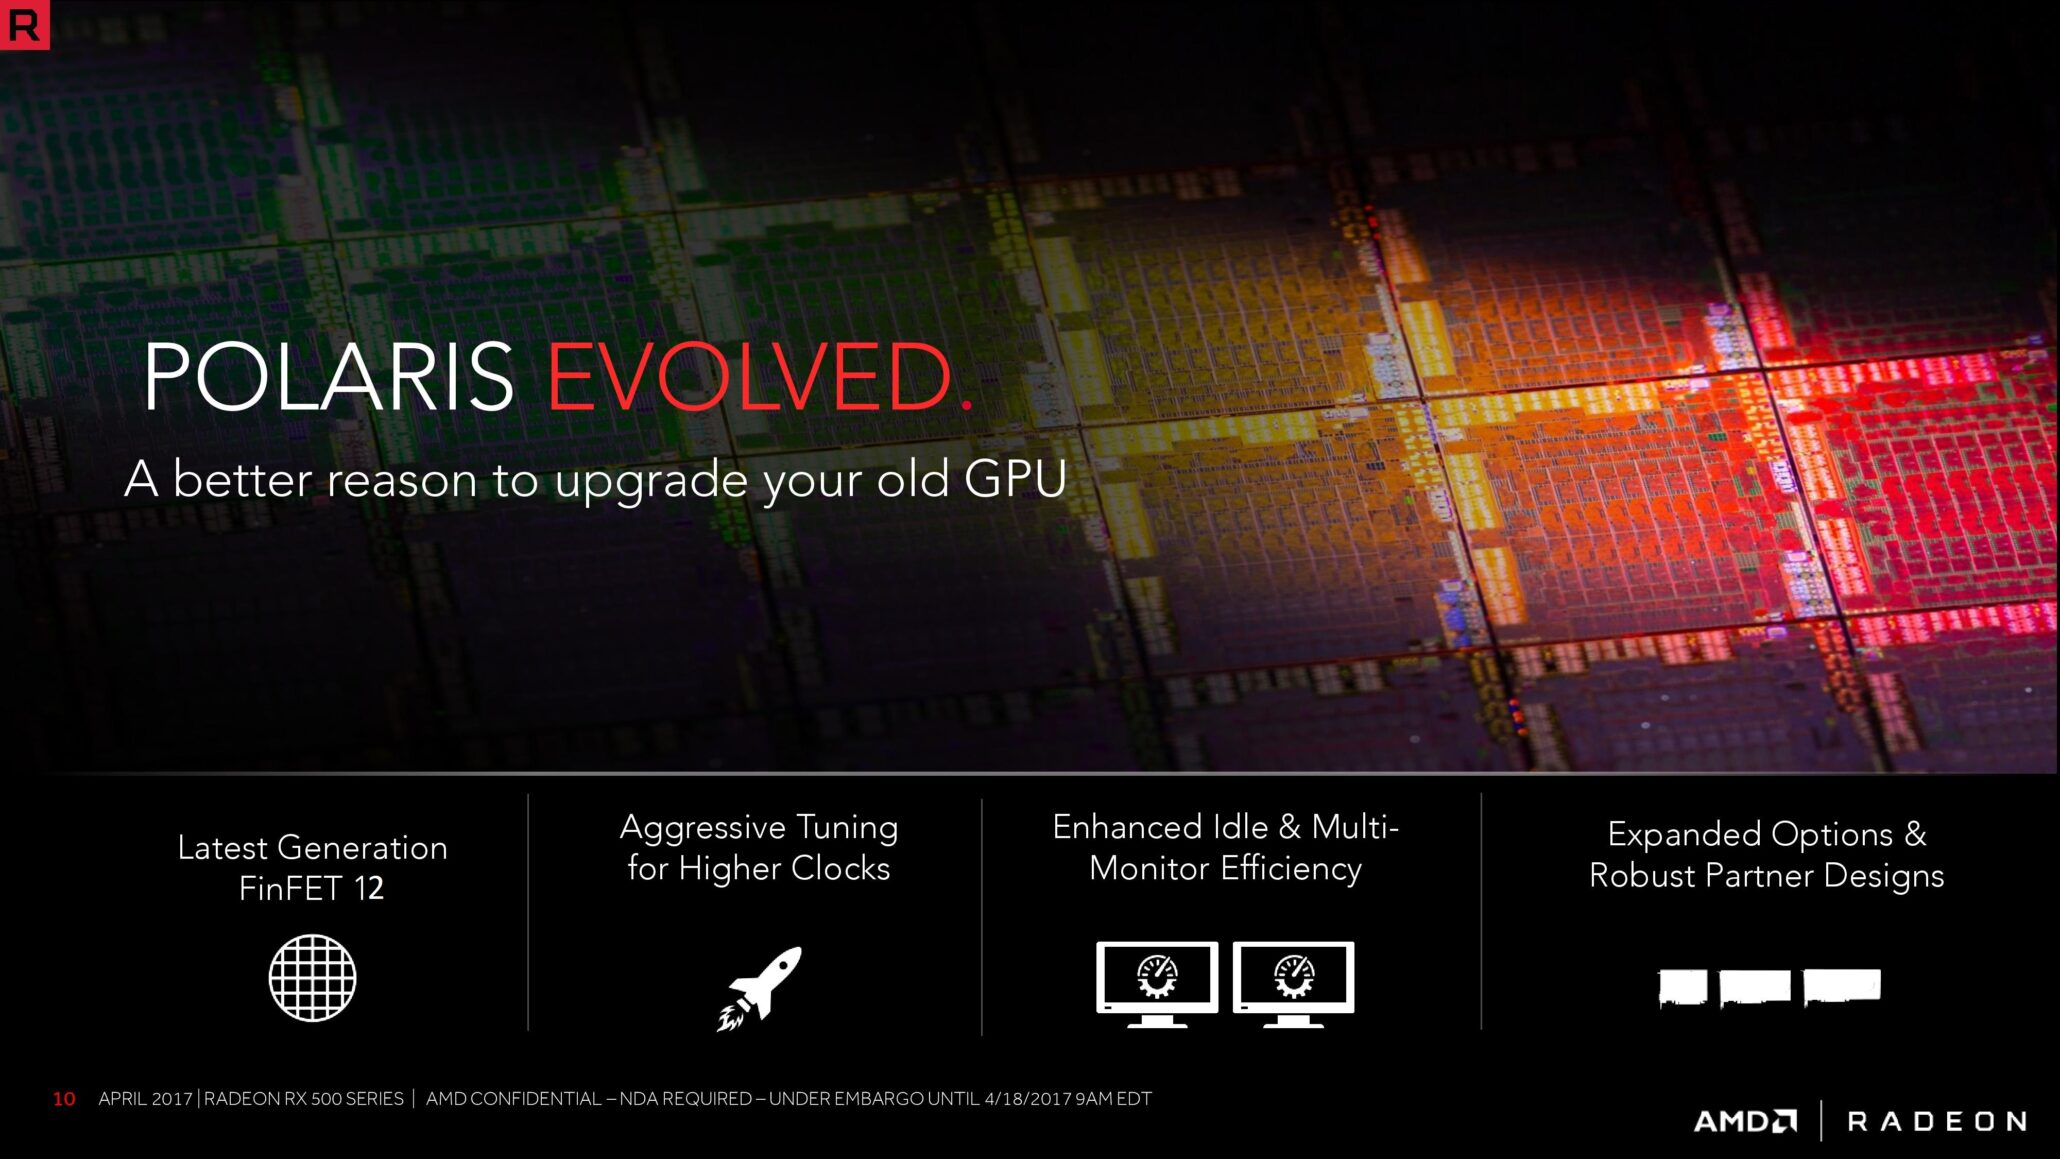 AMD Radeon RX 590 With 12nm Polaris 30 GPU Clocks Up To 1700 MHz